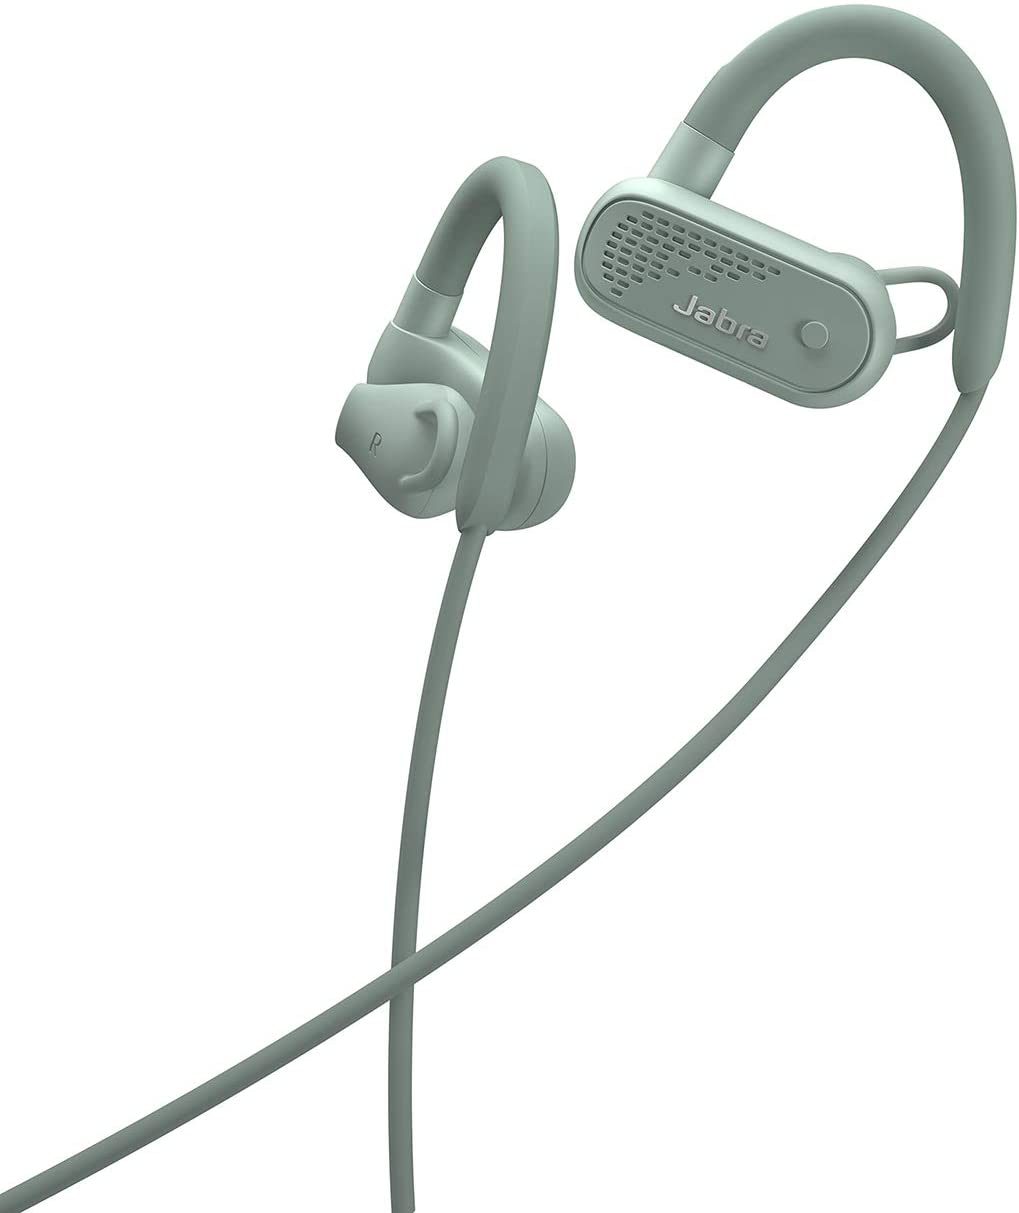 Jabra Elite Active 45e Wireless Sports Earbuds, Mint – Alexa Built-in Wireless Bluetooth Earbuds, Around-The-Neck Style with a Secure Fit and Superior Sound, Long Battery Life, Ideal for Running